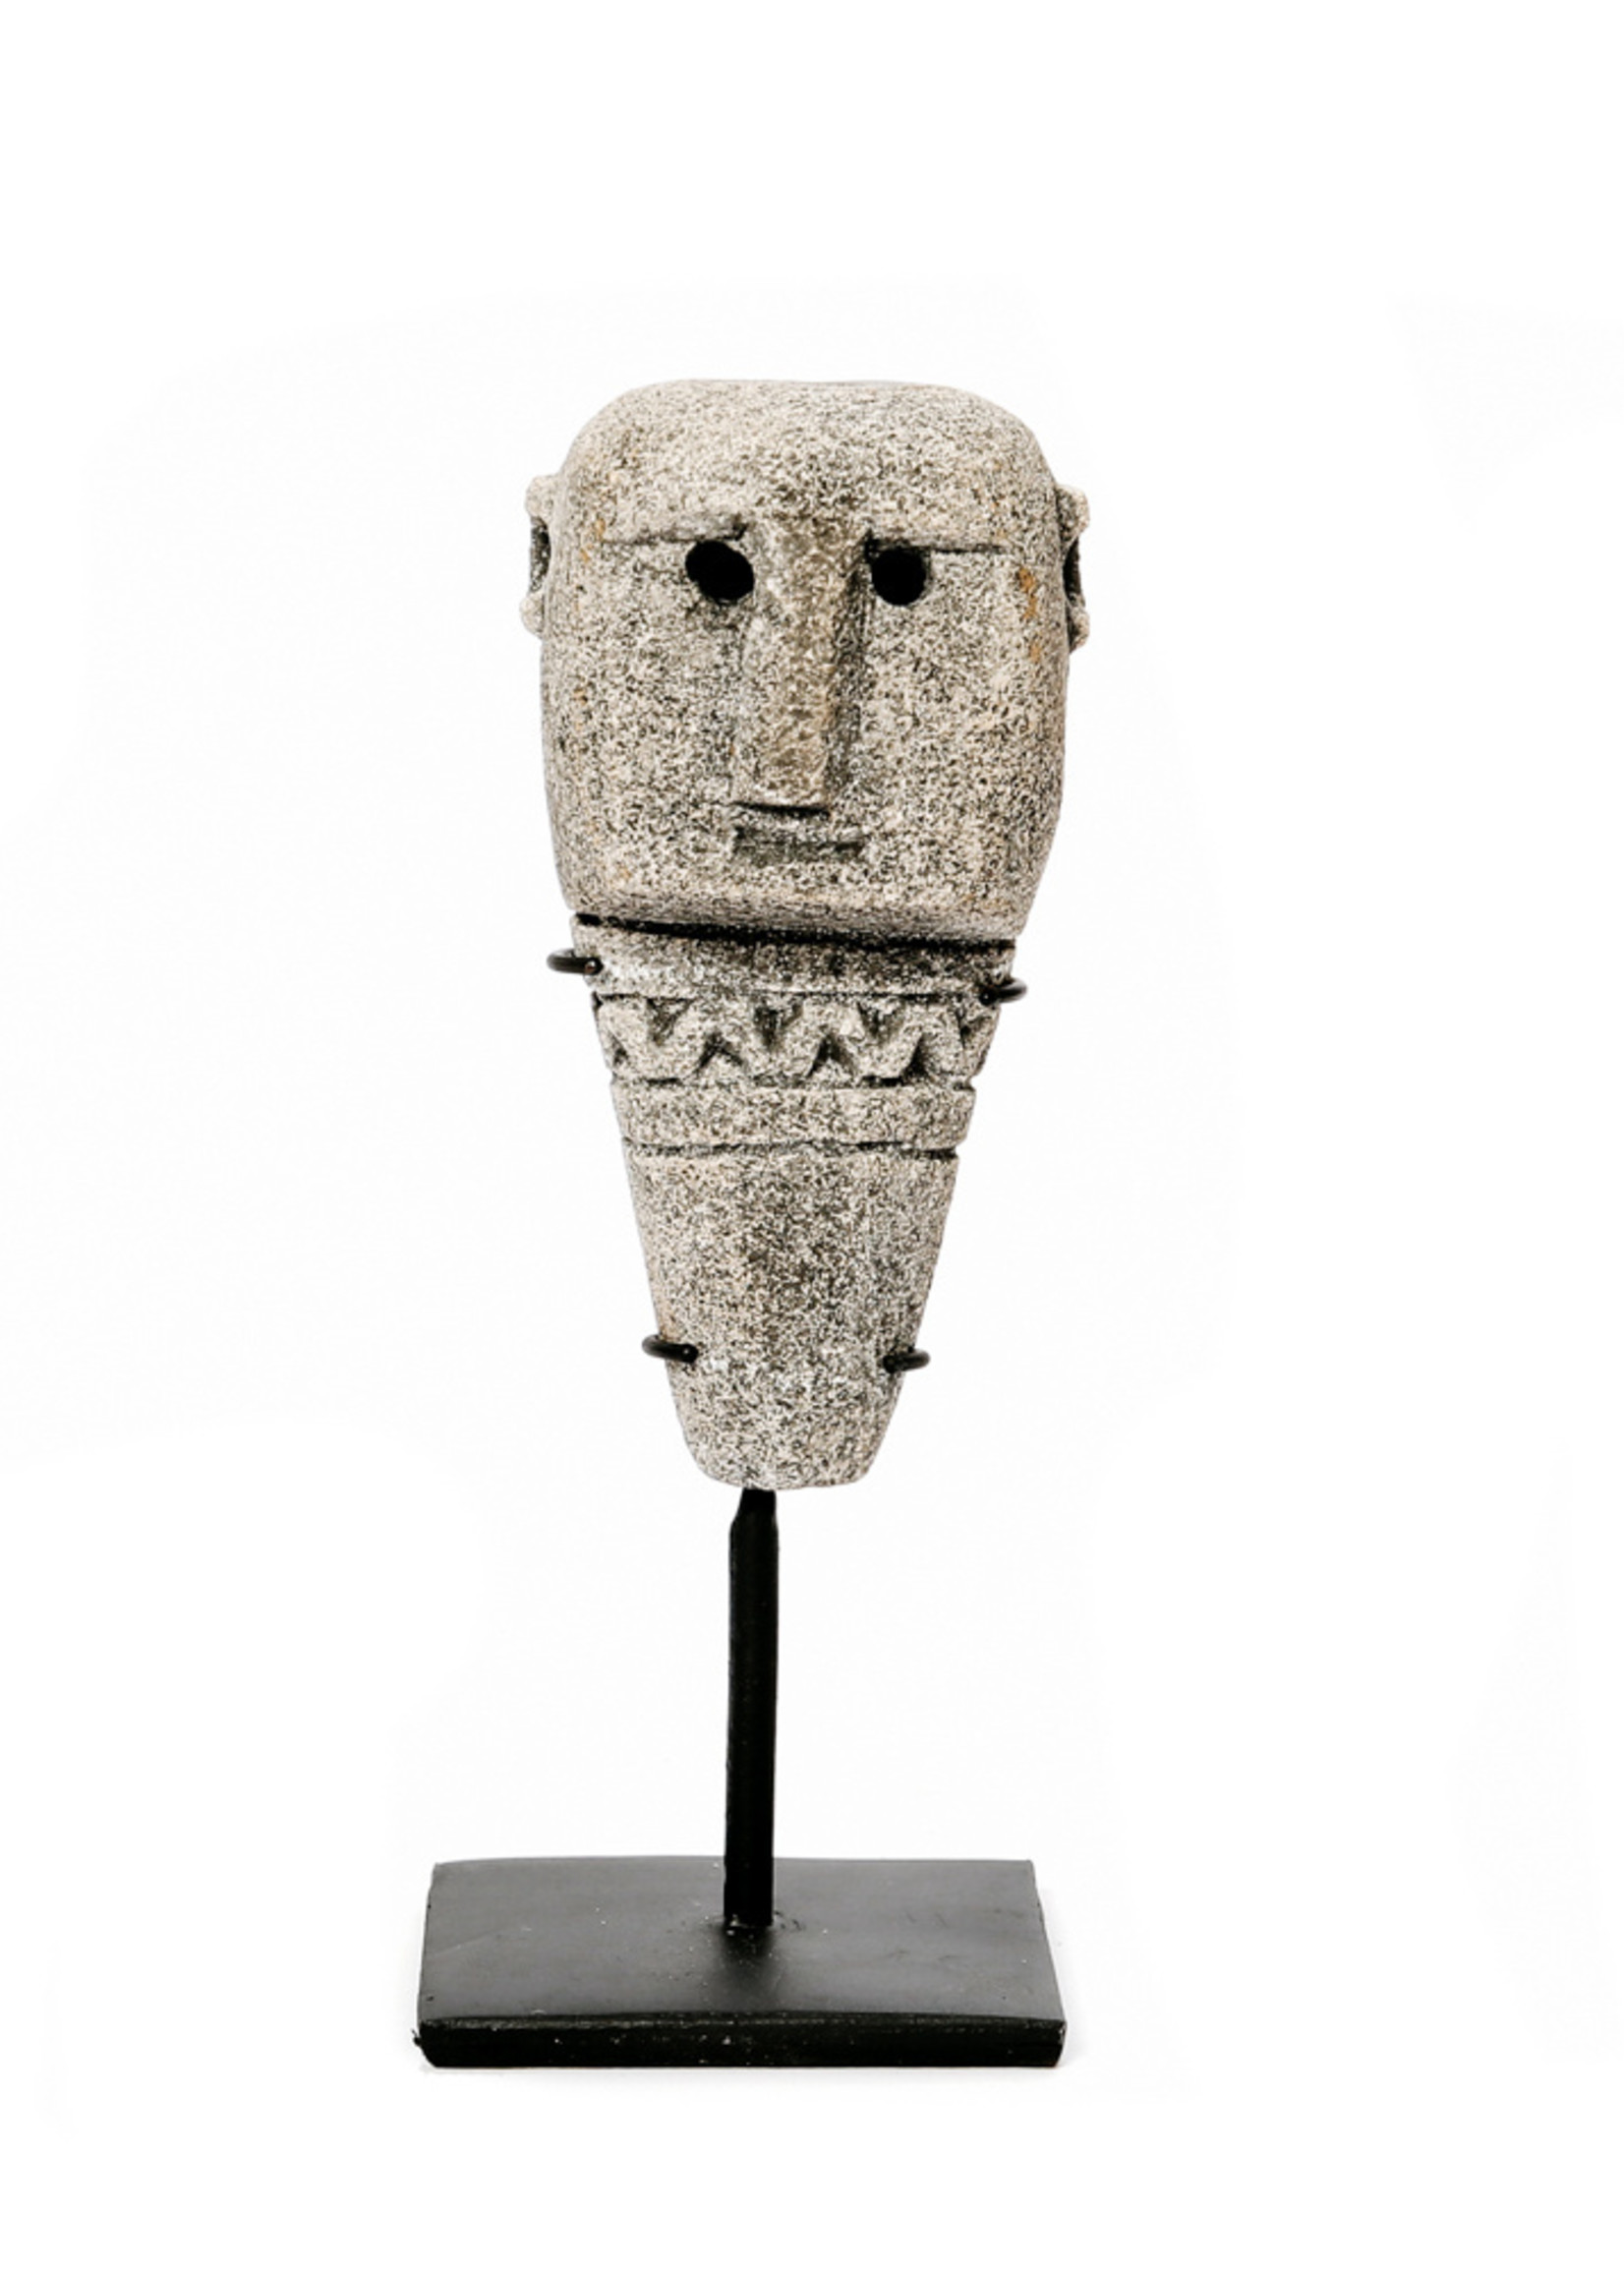 The Sumba Stone Statue #10 on Stand - Grey